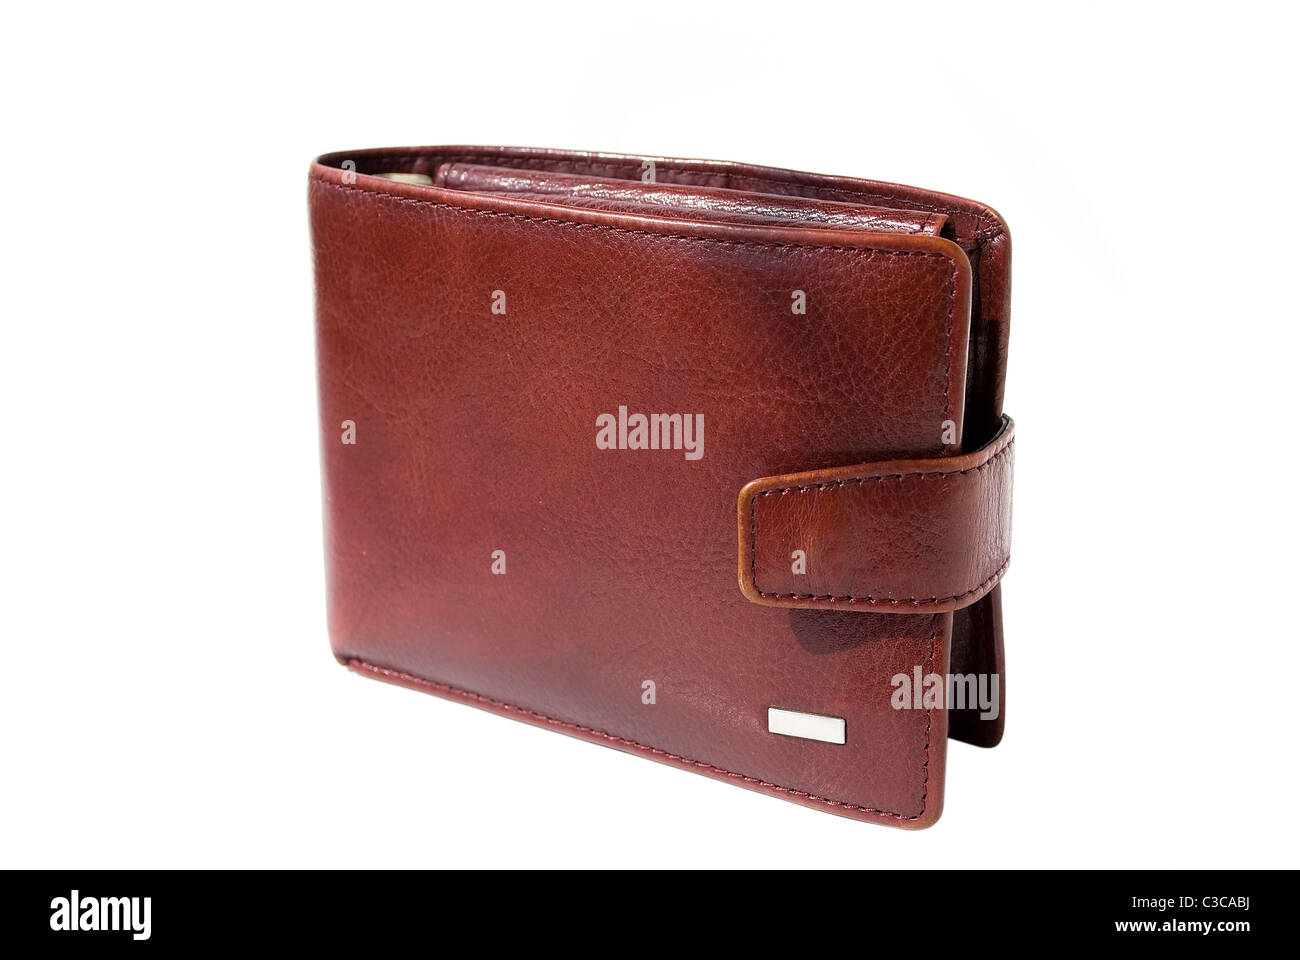 brown leather purse wallet isolated on white background - Stock Image